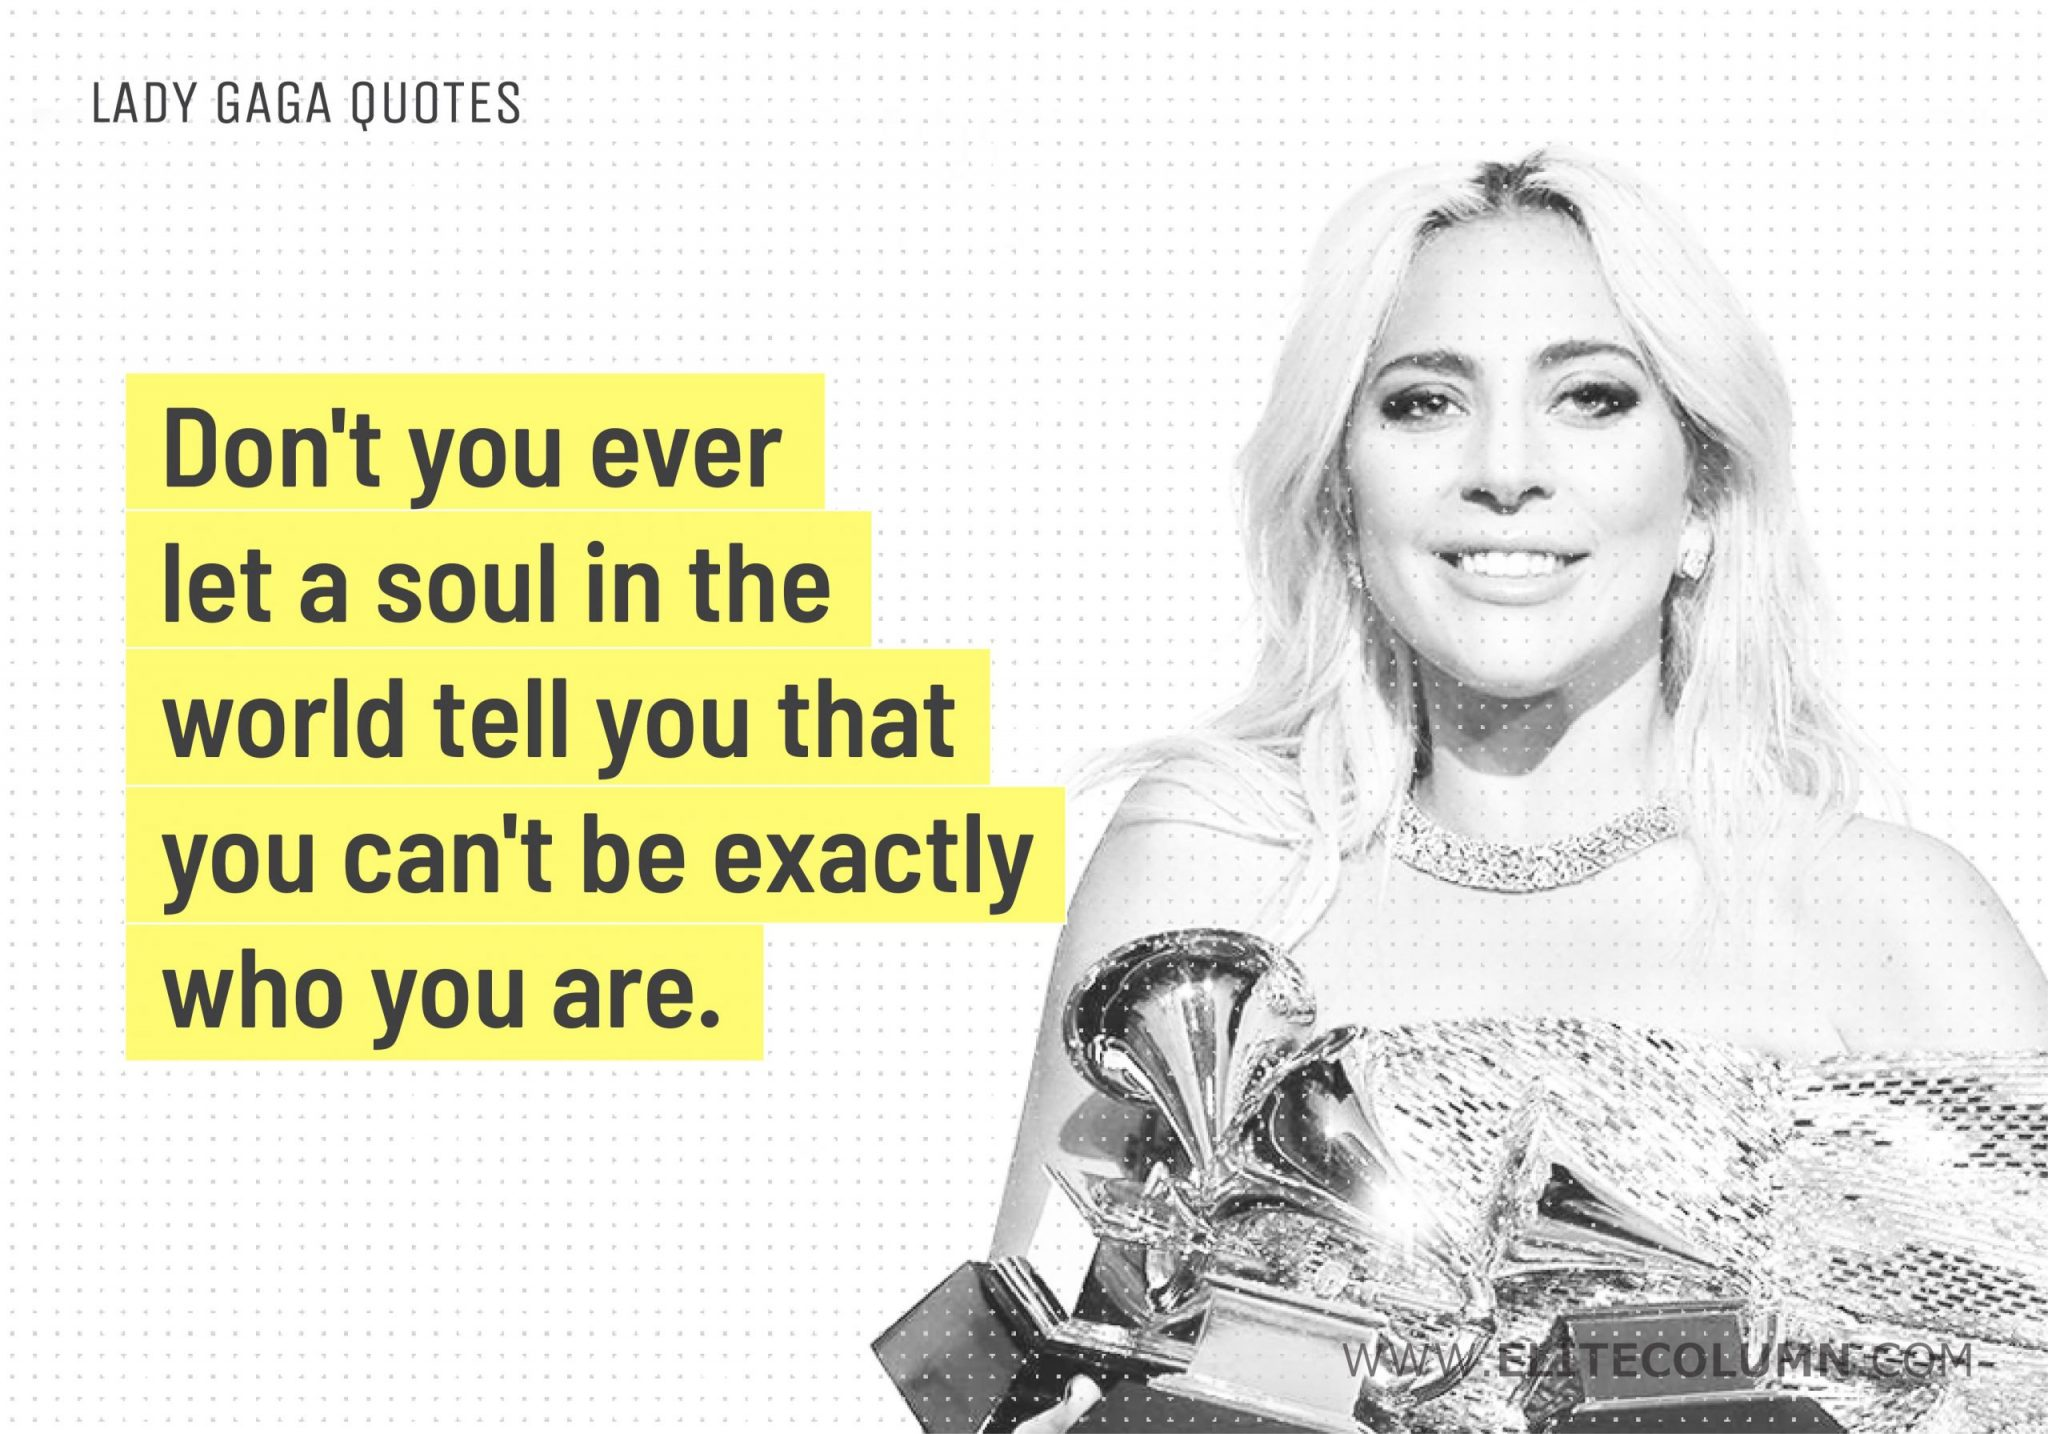 Lady Gaga Quotes (4)